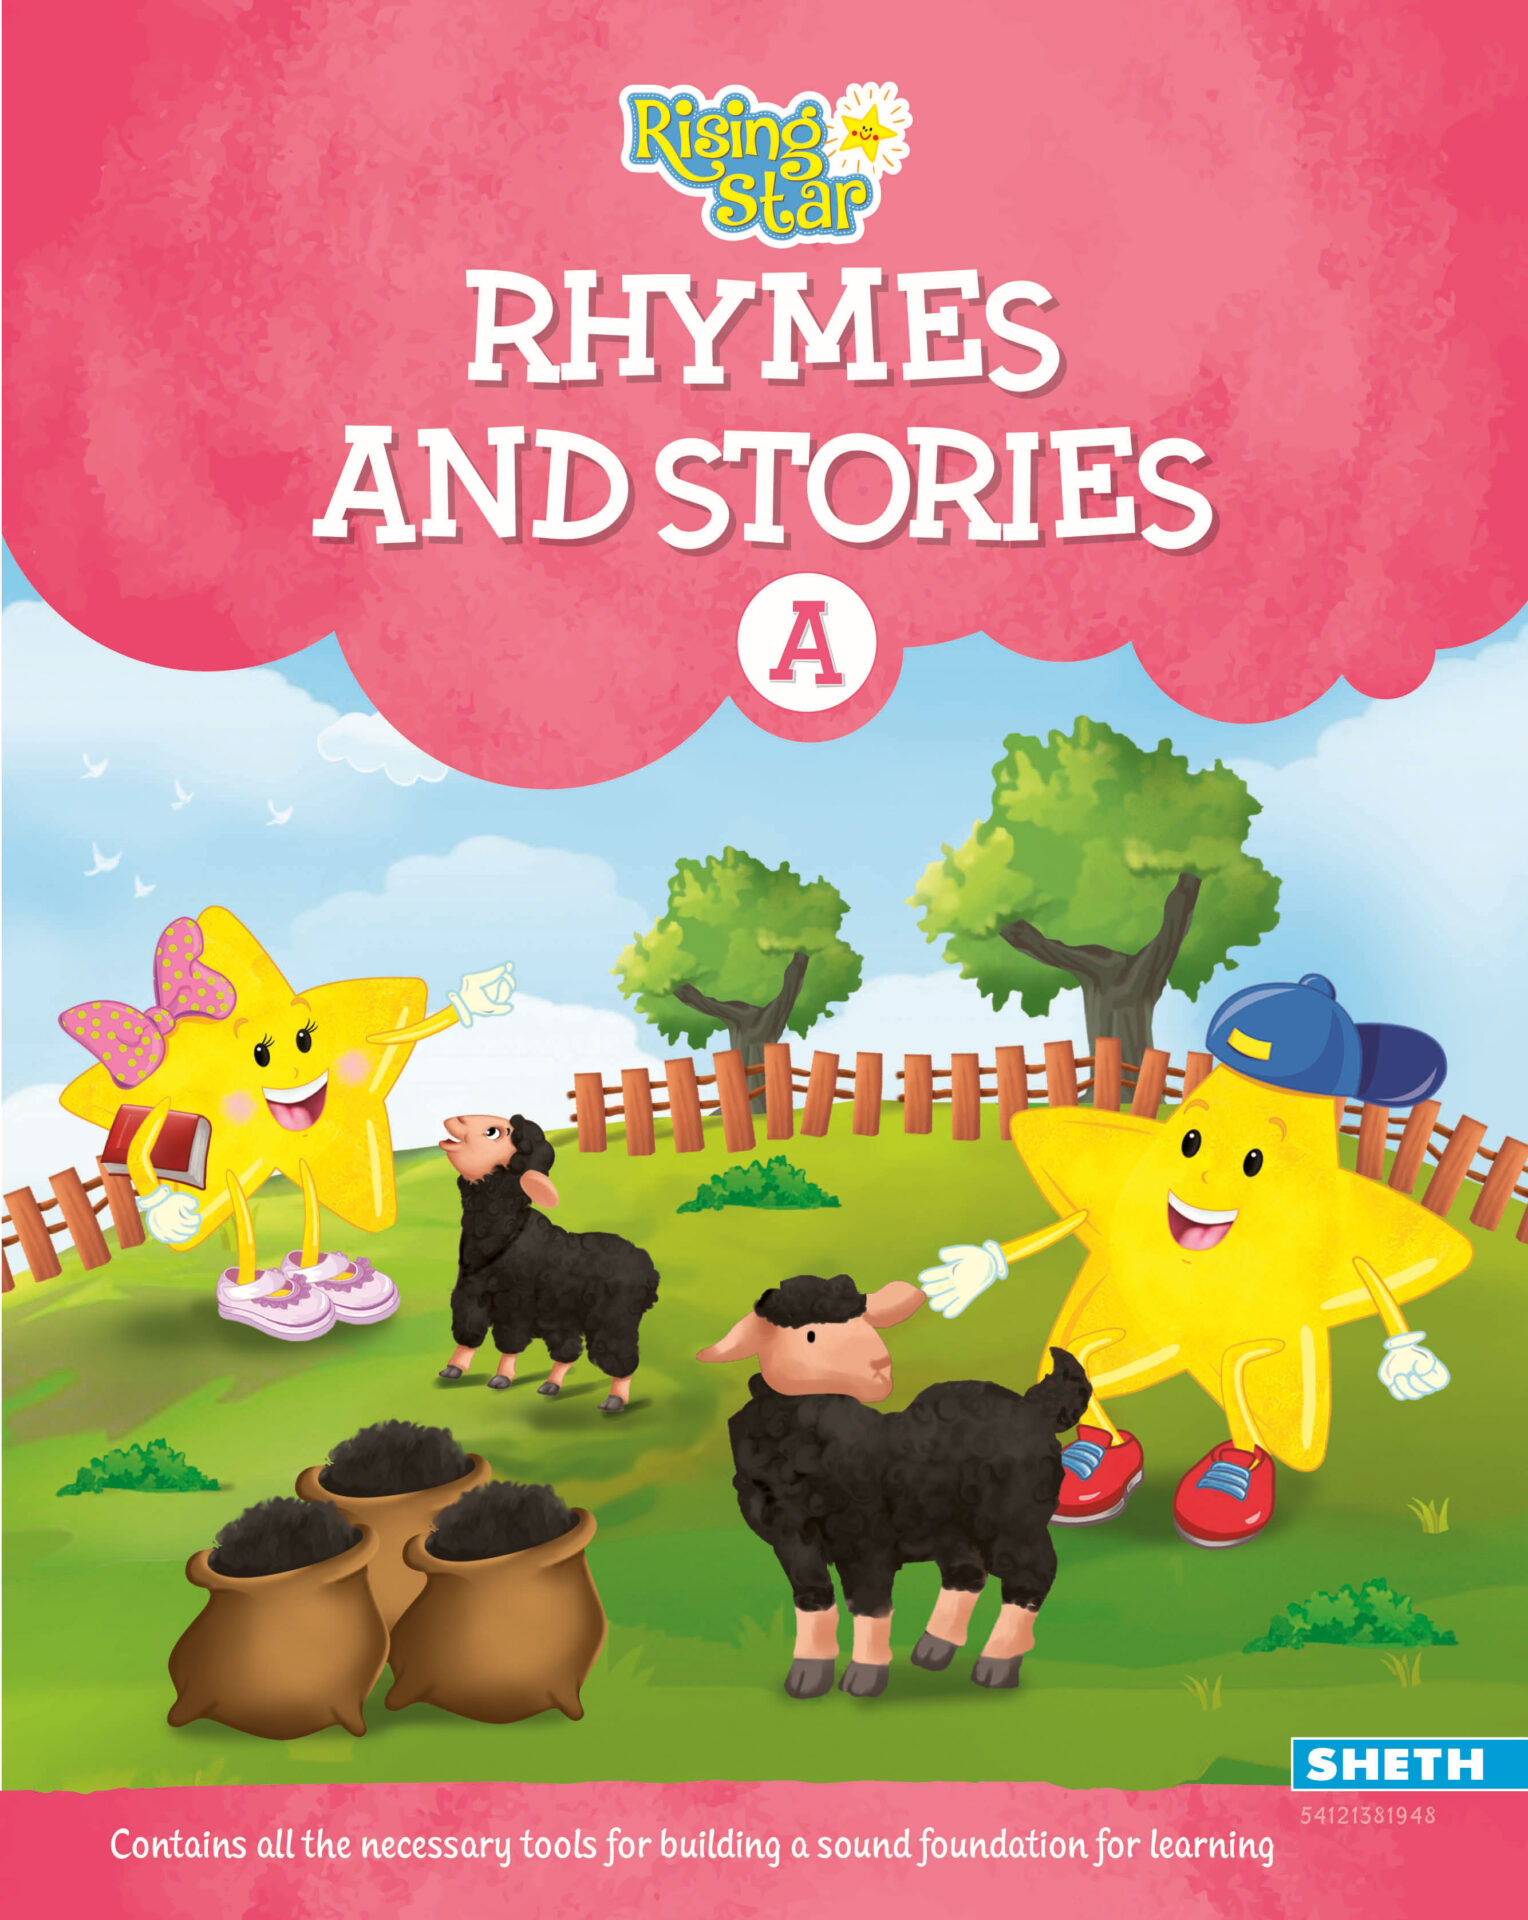 Rising Star Rhymes and Stories A 1 1